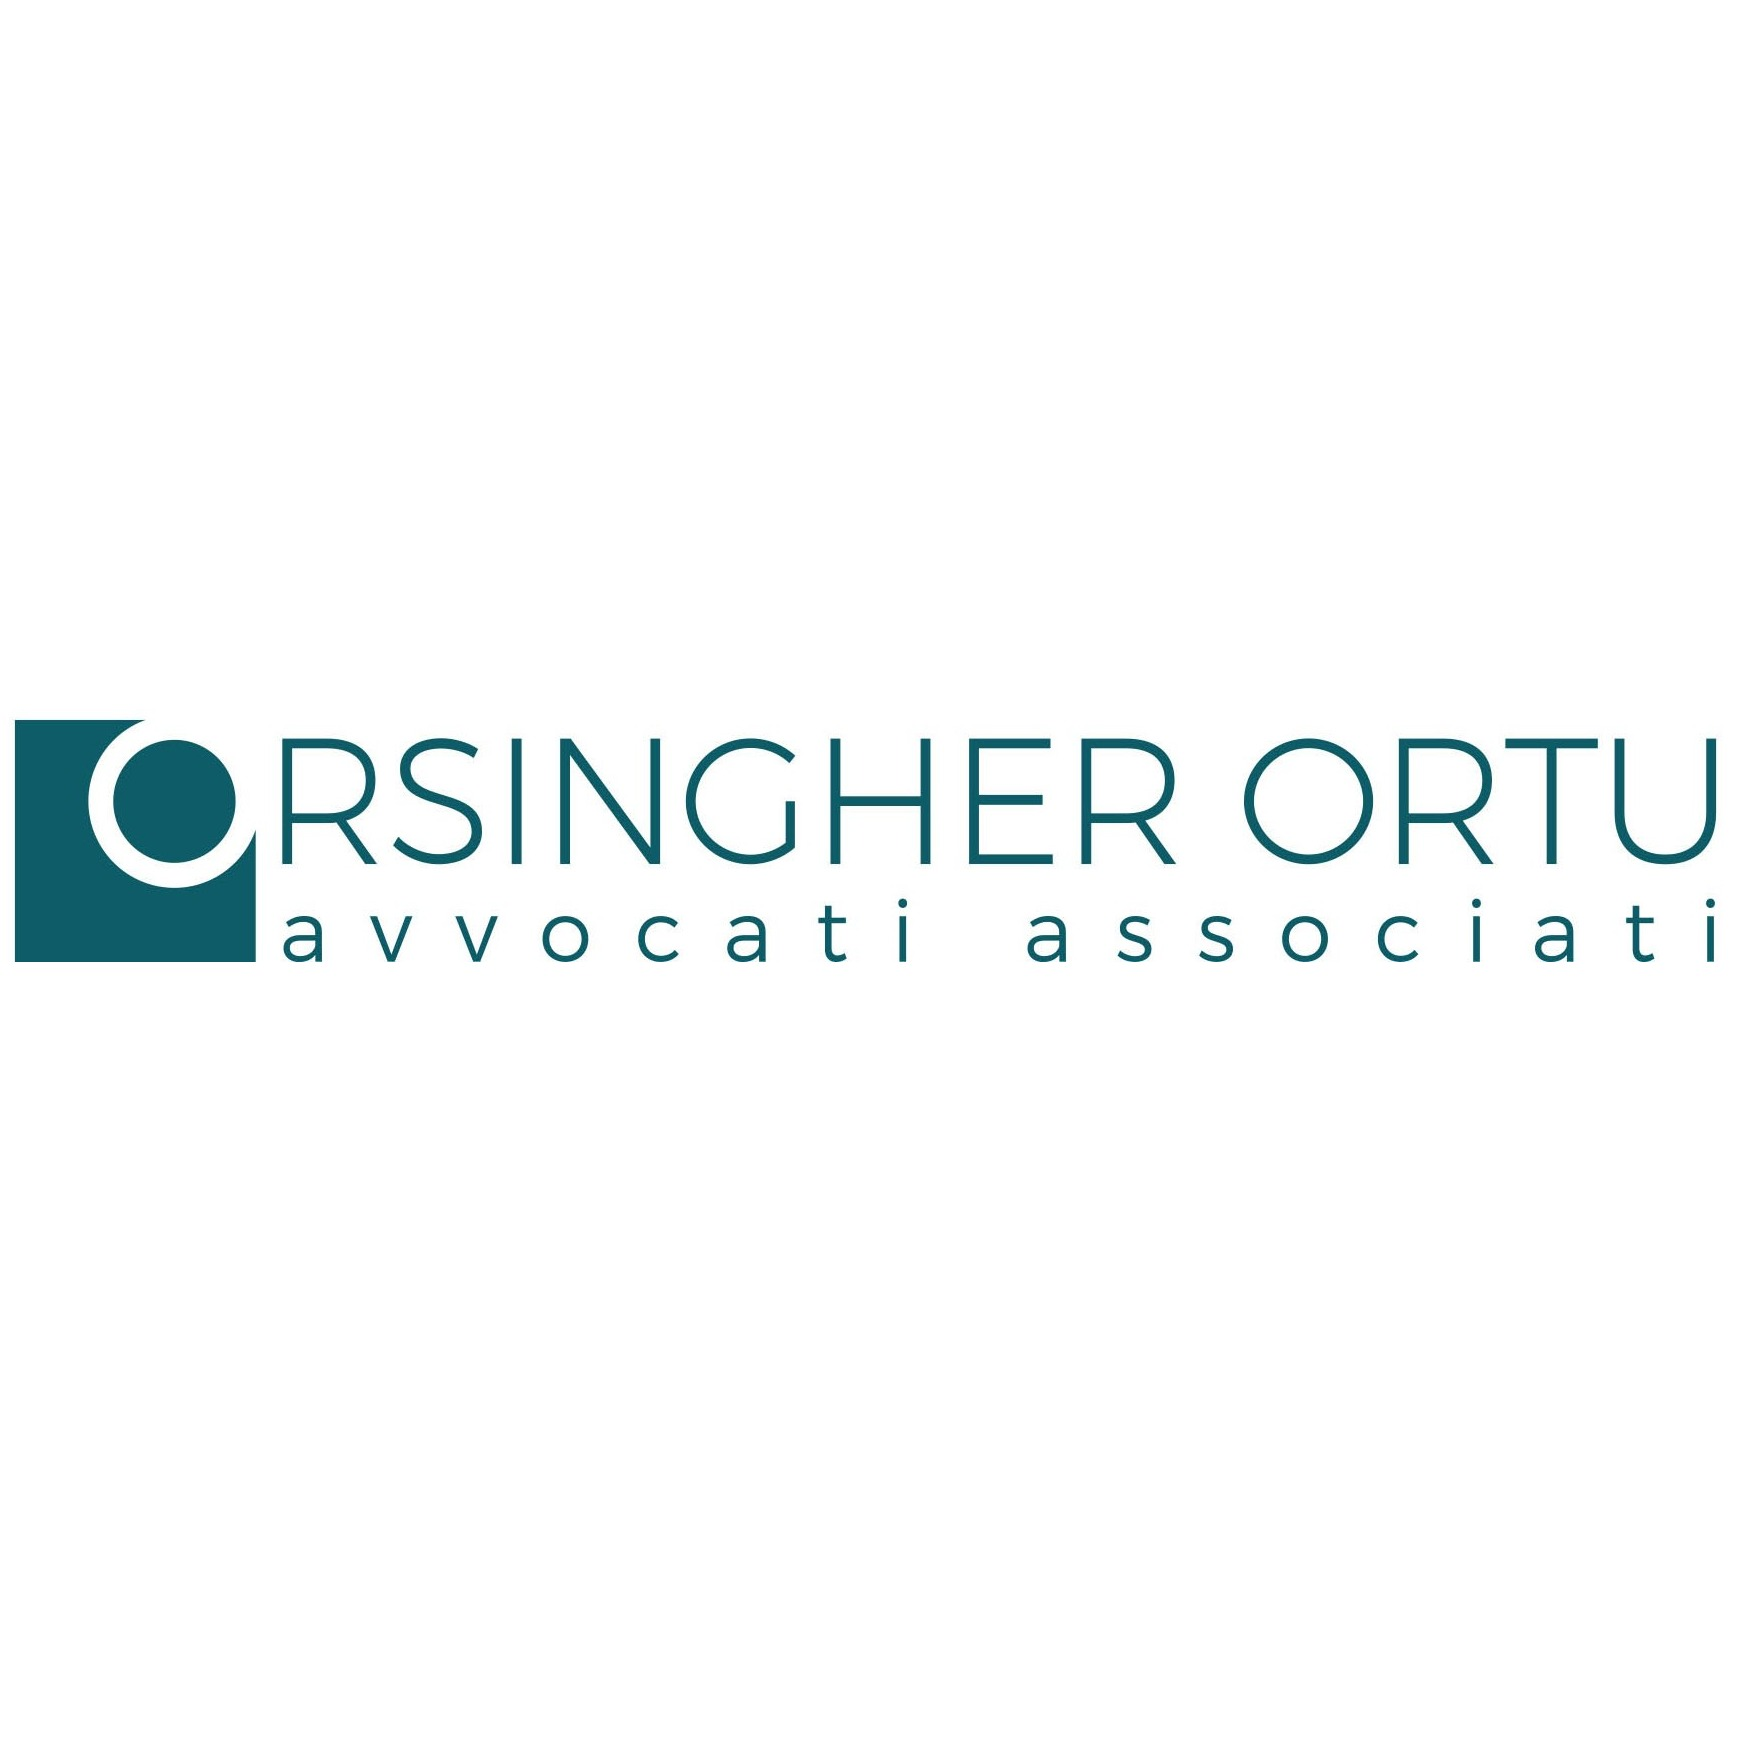 the Orsingher Ortu logo.